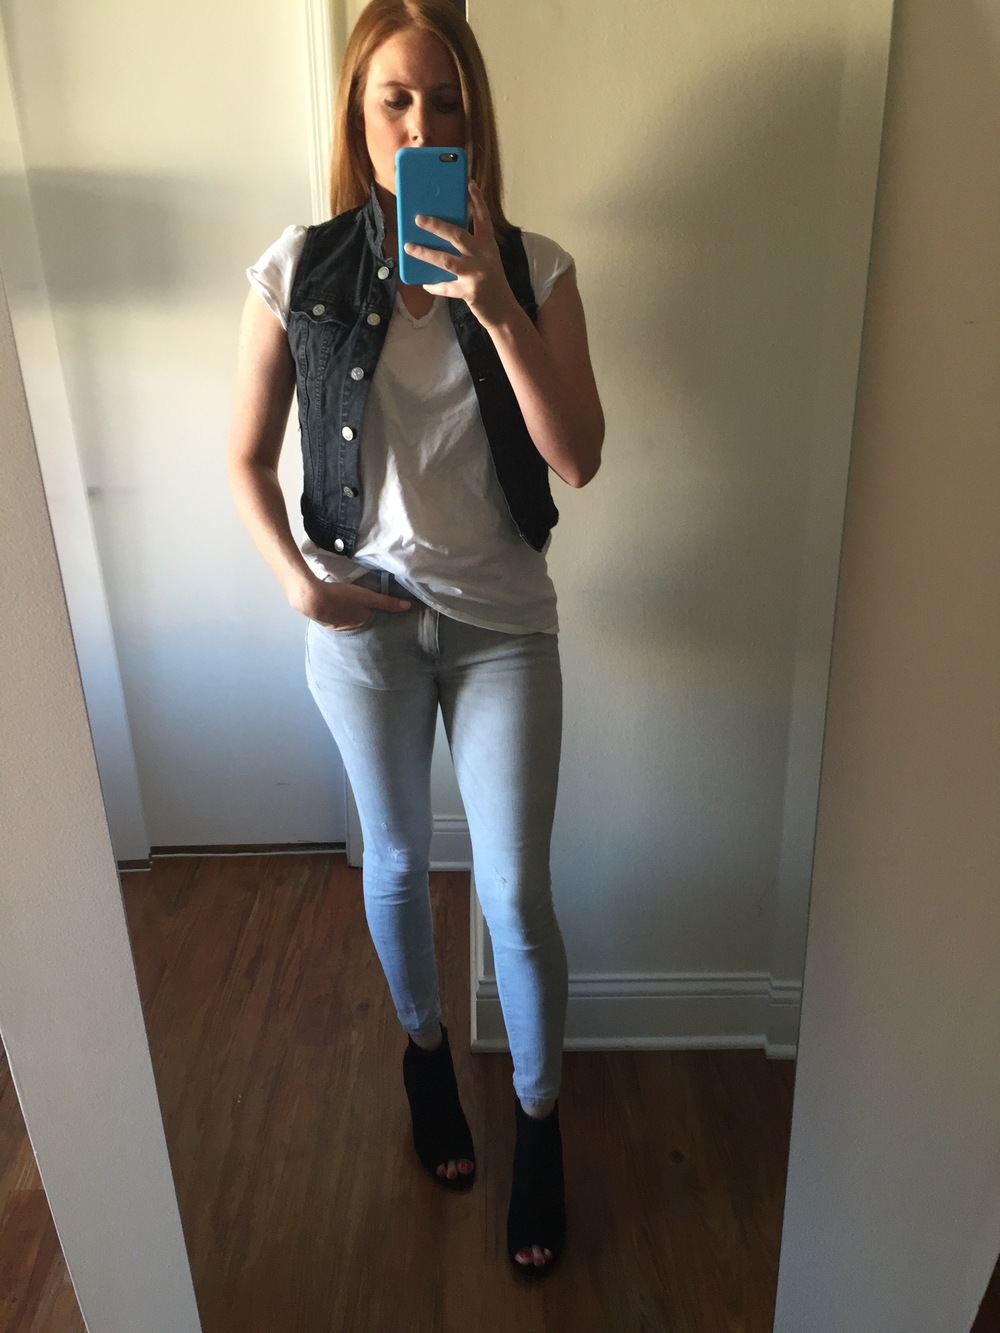 Vest: H&M, T-shirt: Anthropologie, Jeans: Ankle Legging, Mia-Mid Rise, Shoes: Old Navy,  Sueded Open-Toe Ankle Boots